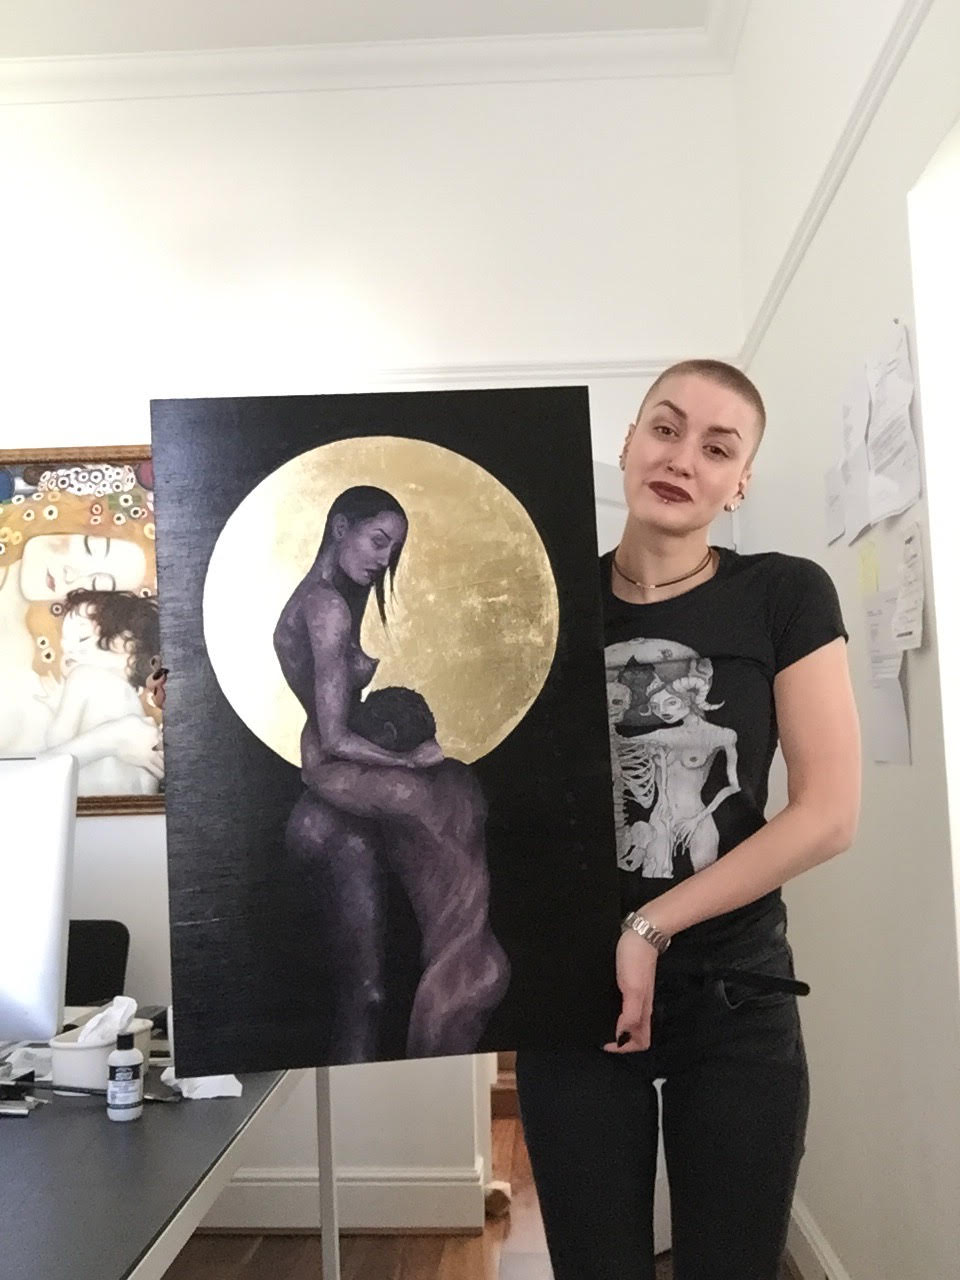 me and the painting 2.jpg